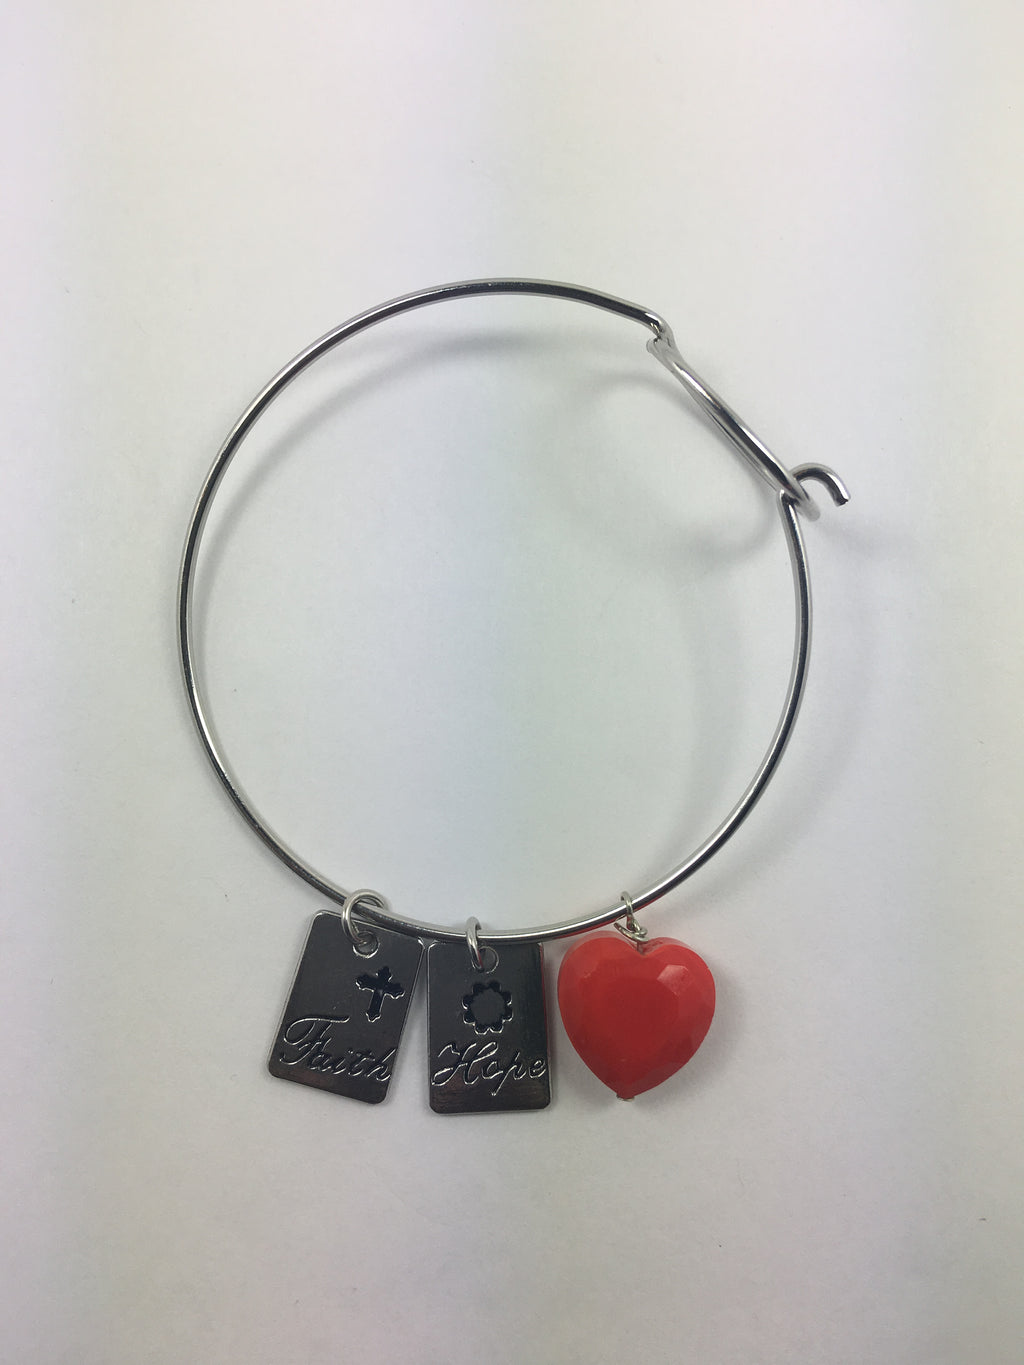 Faith/ Hope/ Love Bangle Bracelet - WATERBURY JEWELS